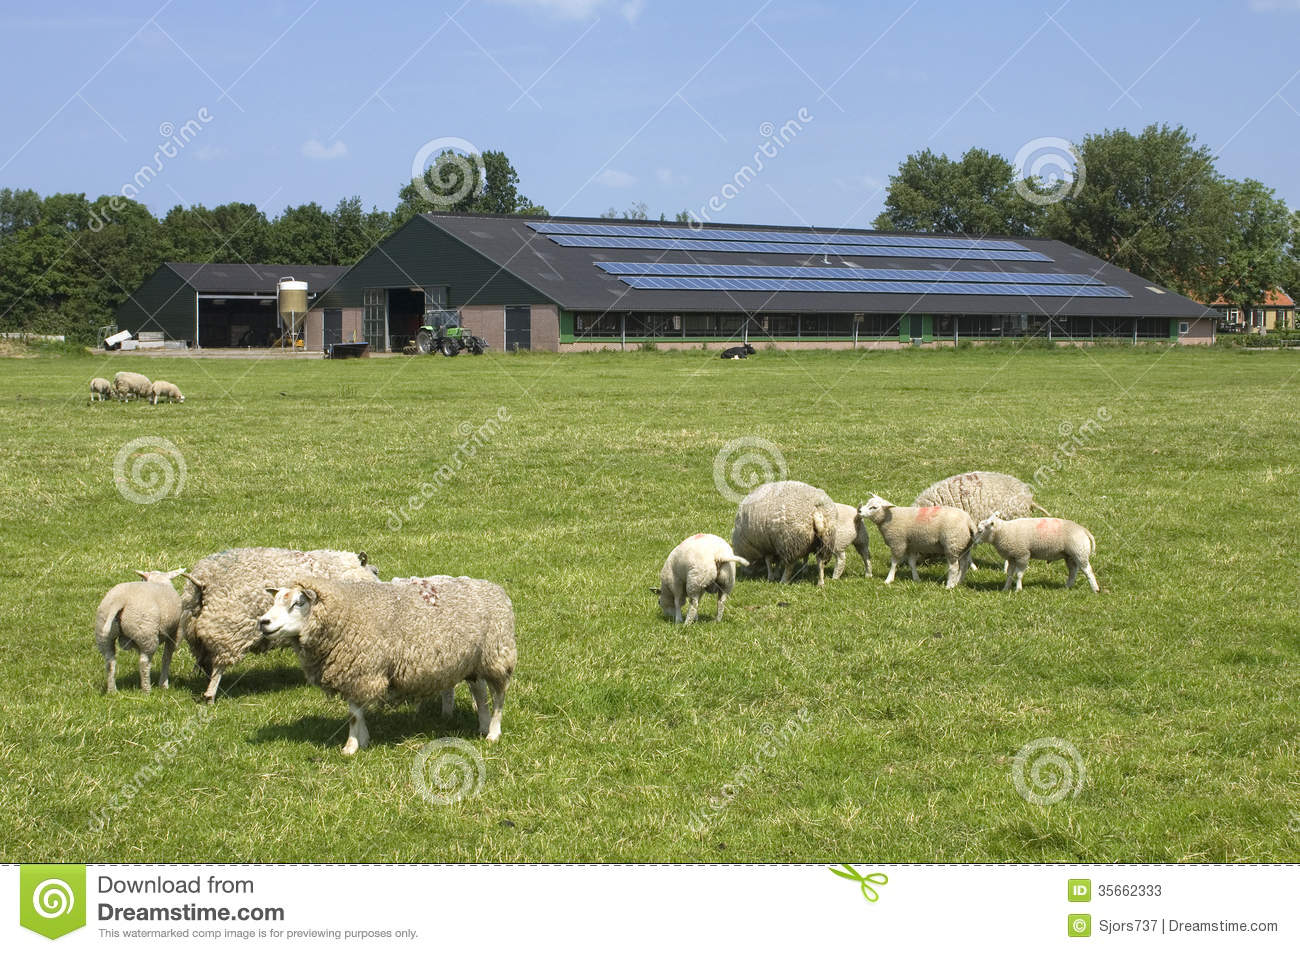 Sheep and solar panels on a farm, Netherlands